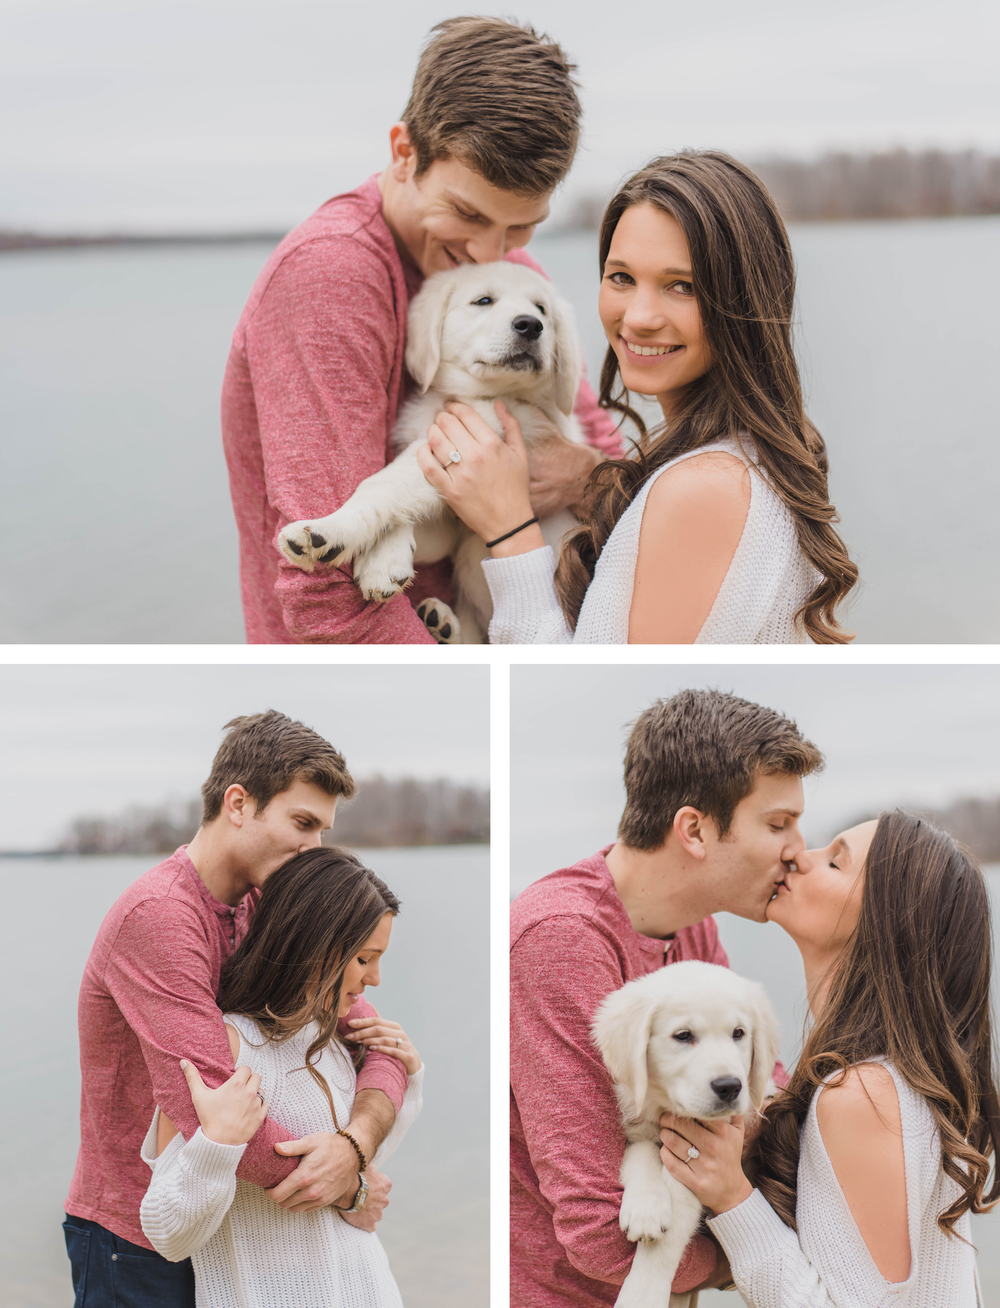 Haley and Evan_Proposal_1.png